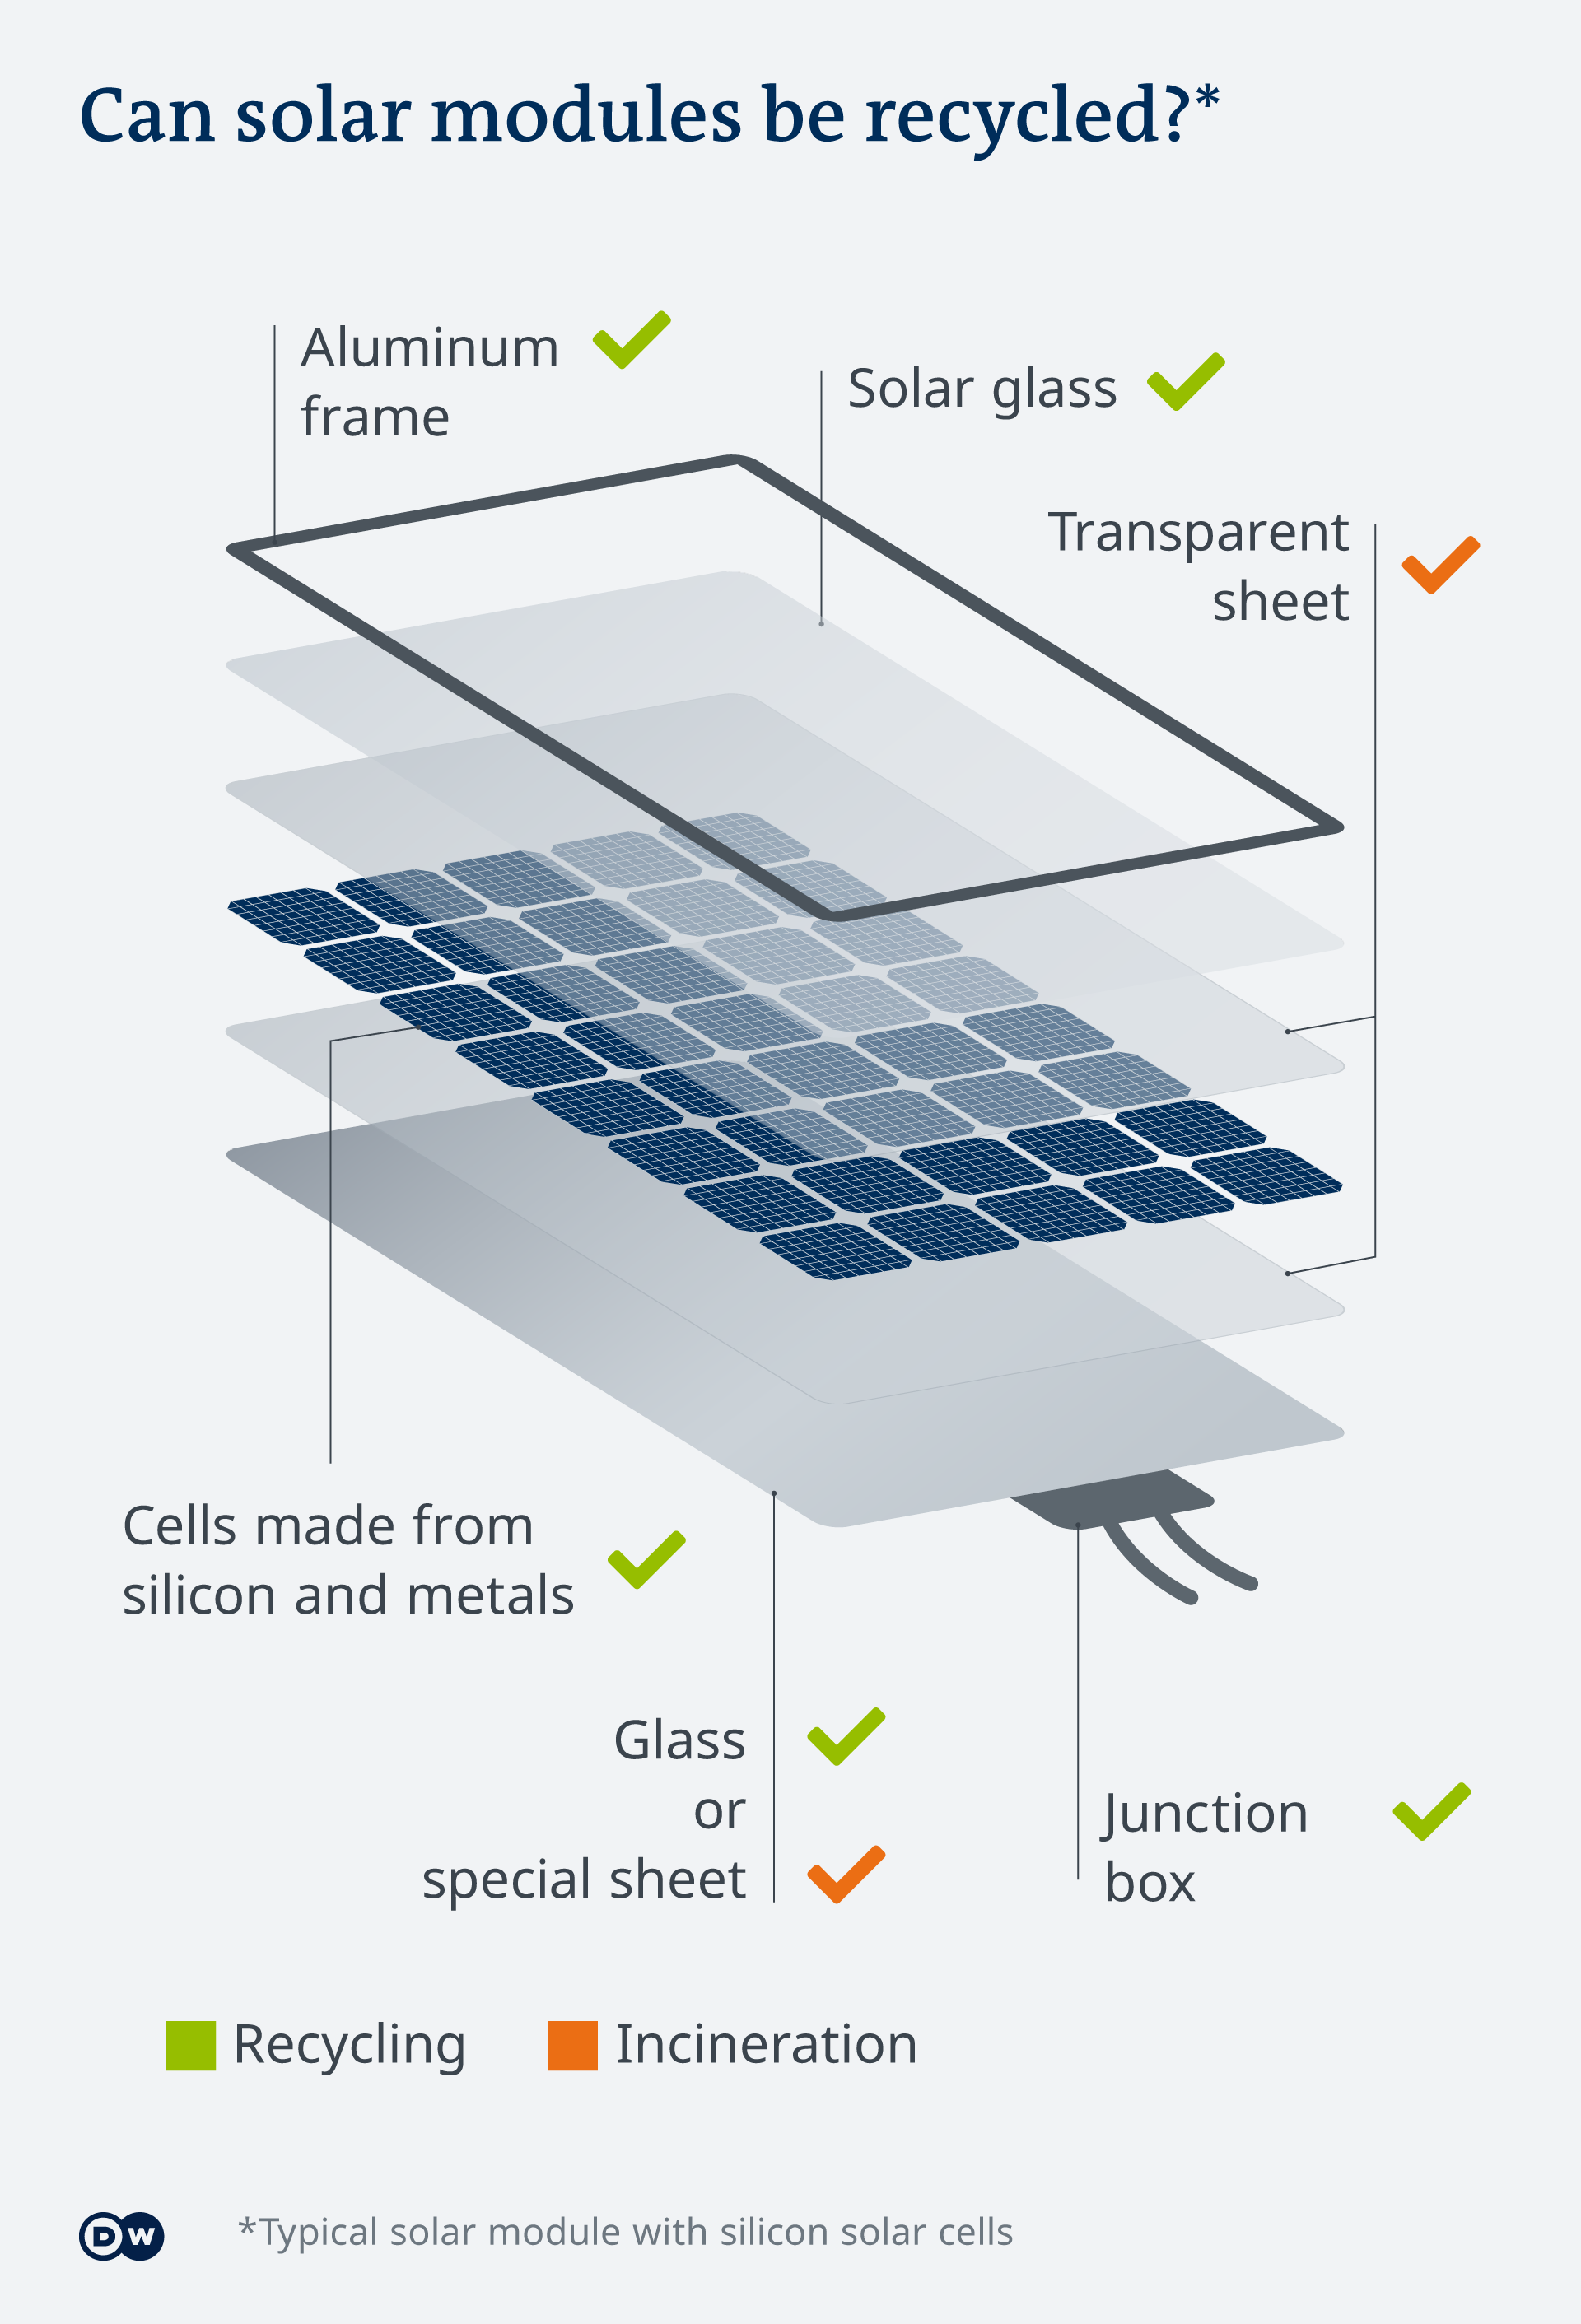 Infographic showing the component parts of a solar module